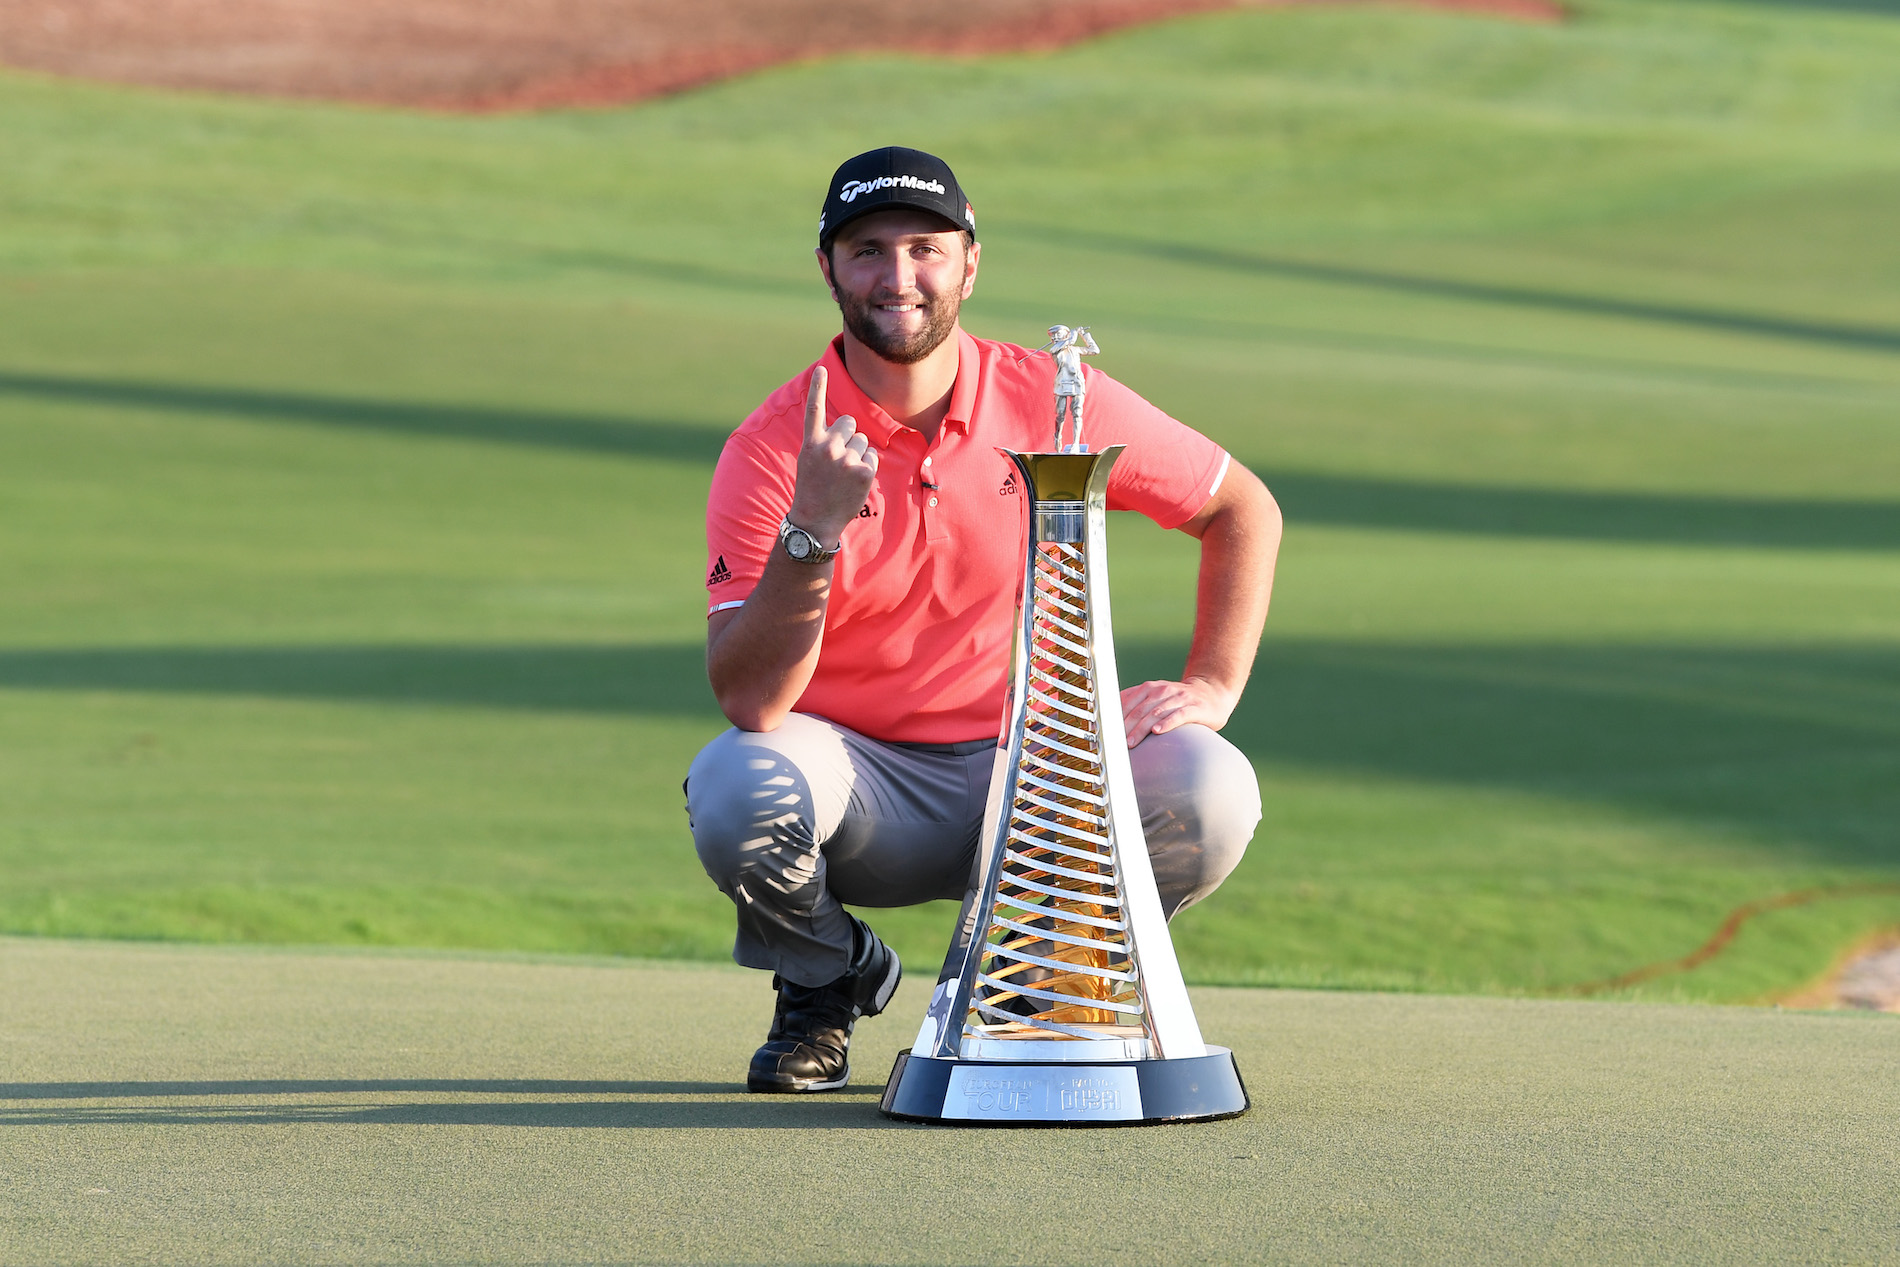 Jon Rahm has a commanding four-shot lead heading into the final round at The Memorial, and he can become No.1 in the world with a win.